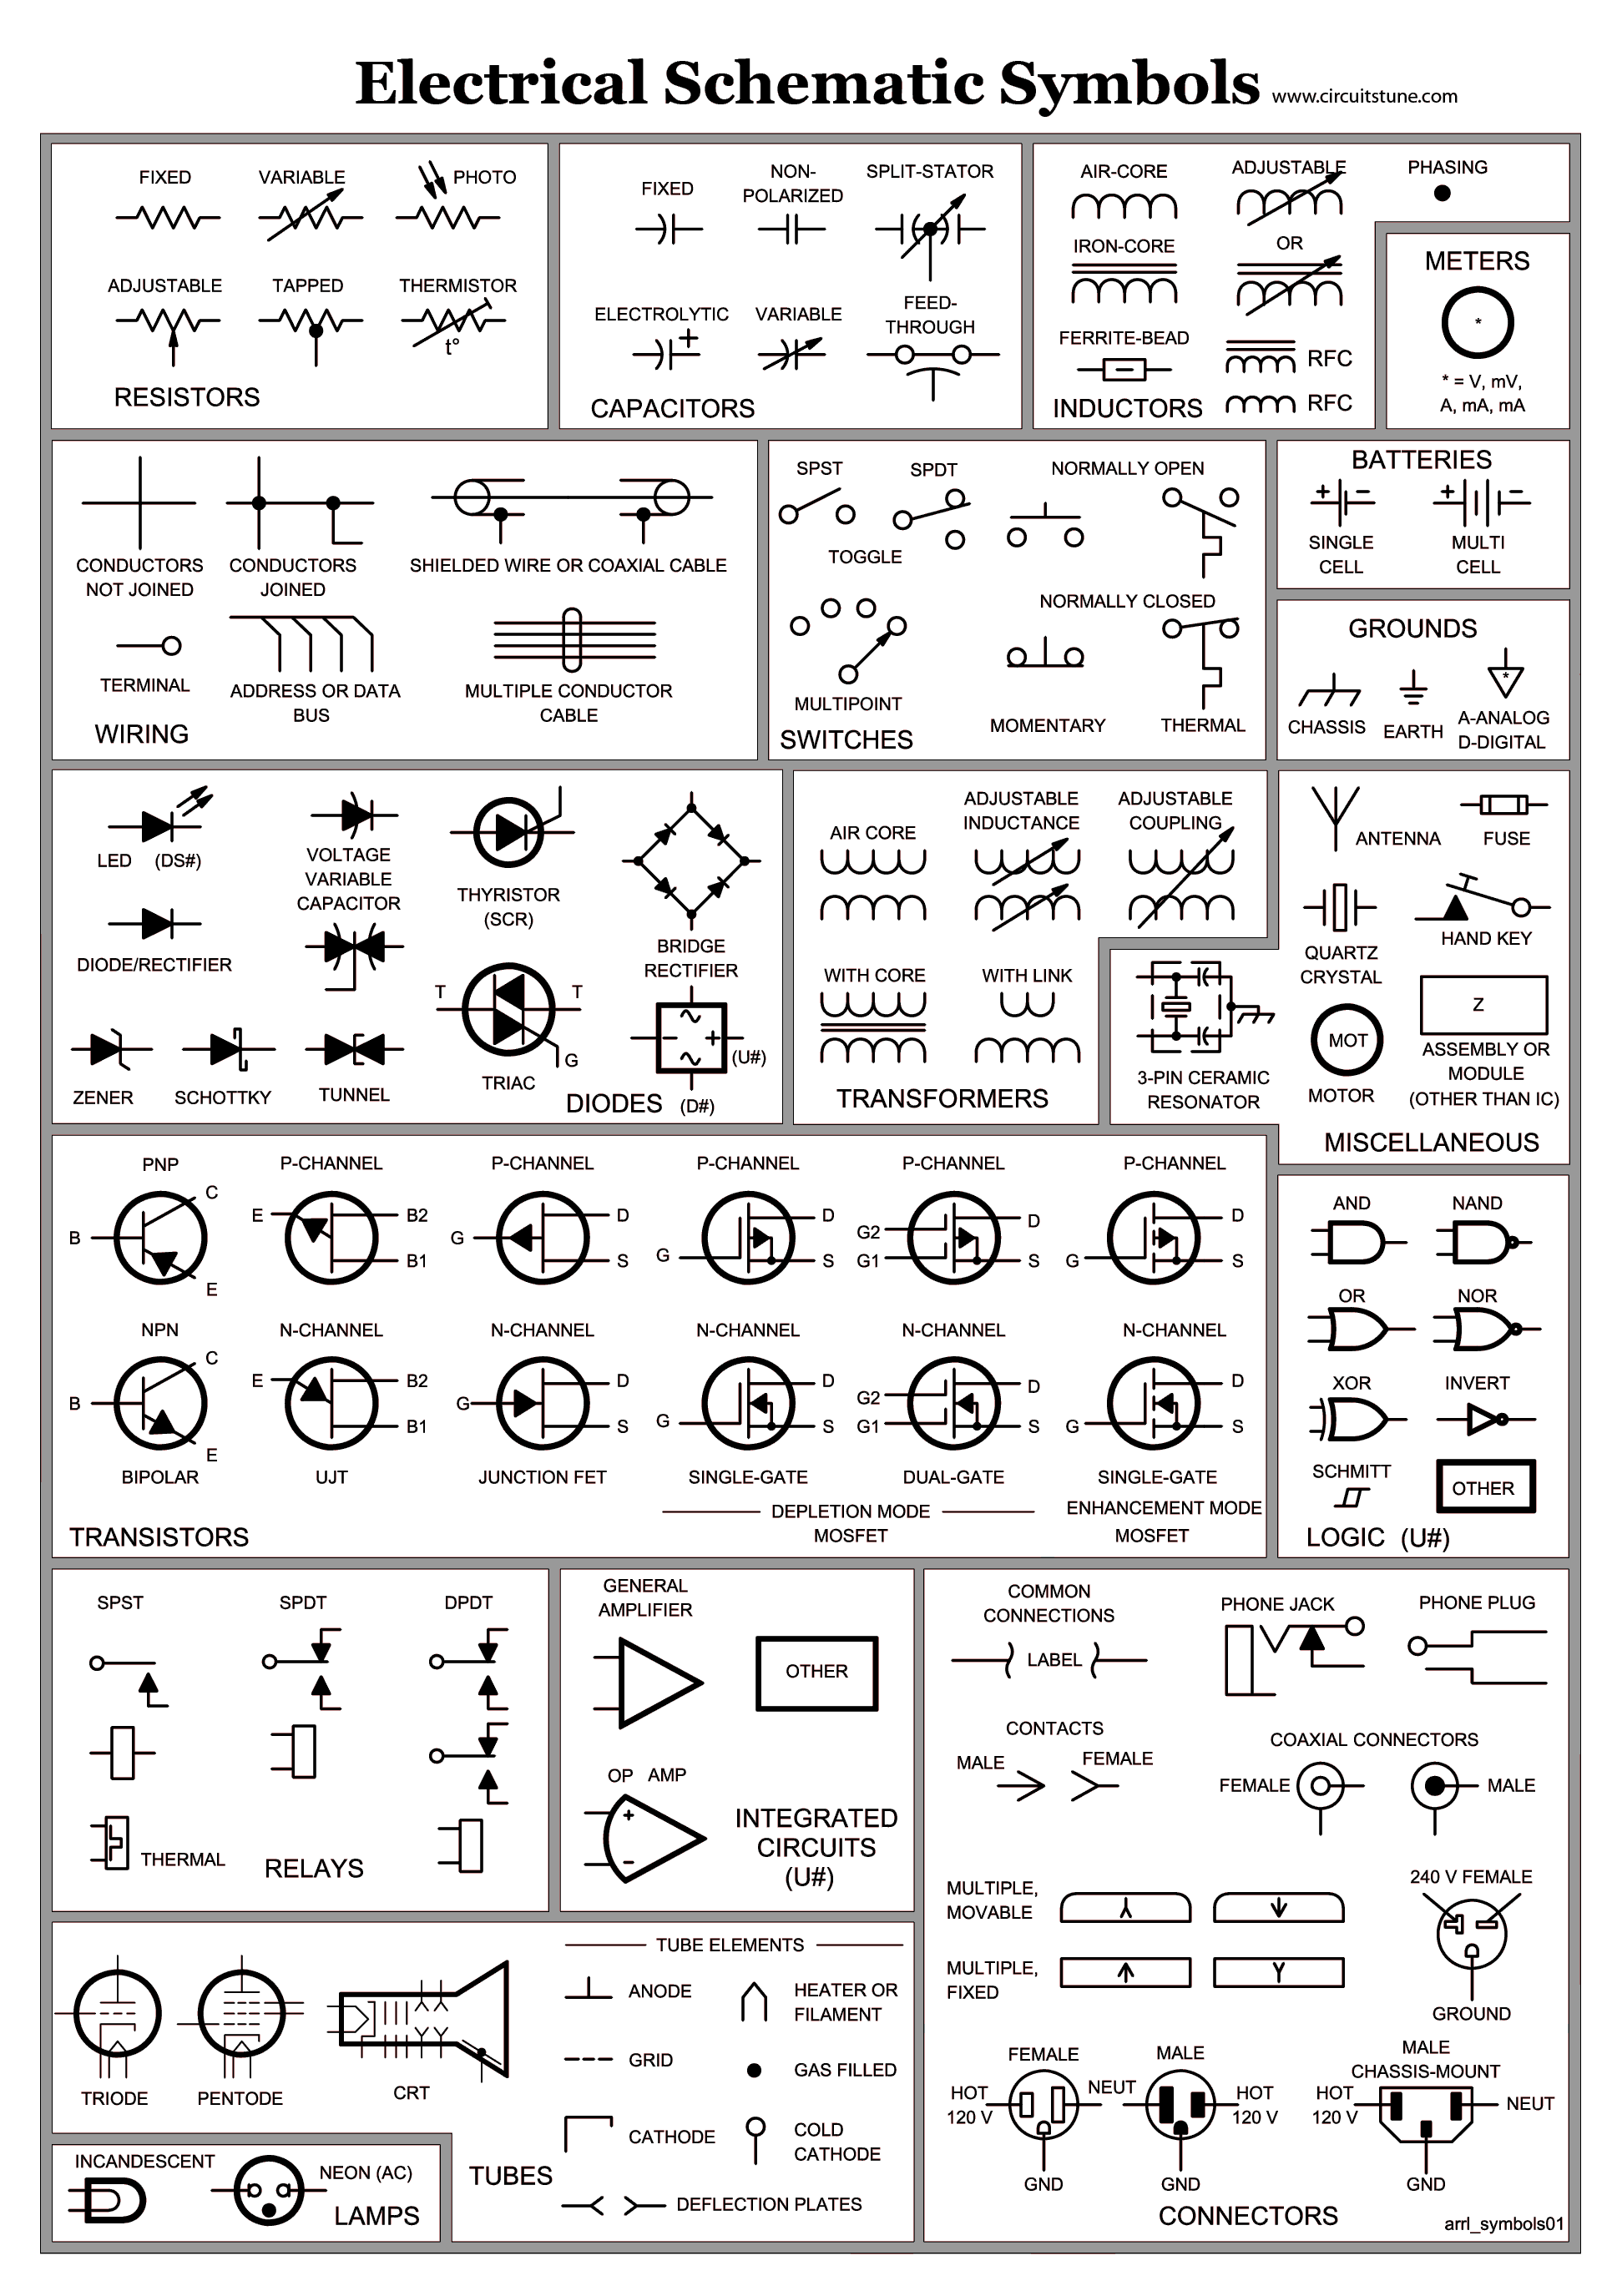 Electrical Schematic Symbols Wire Diagram Symbols